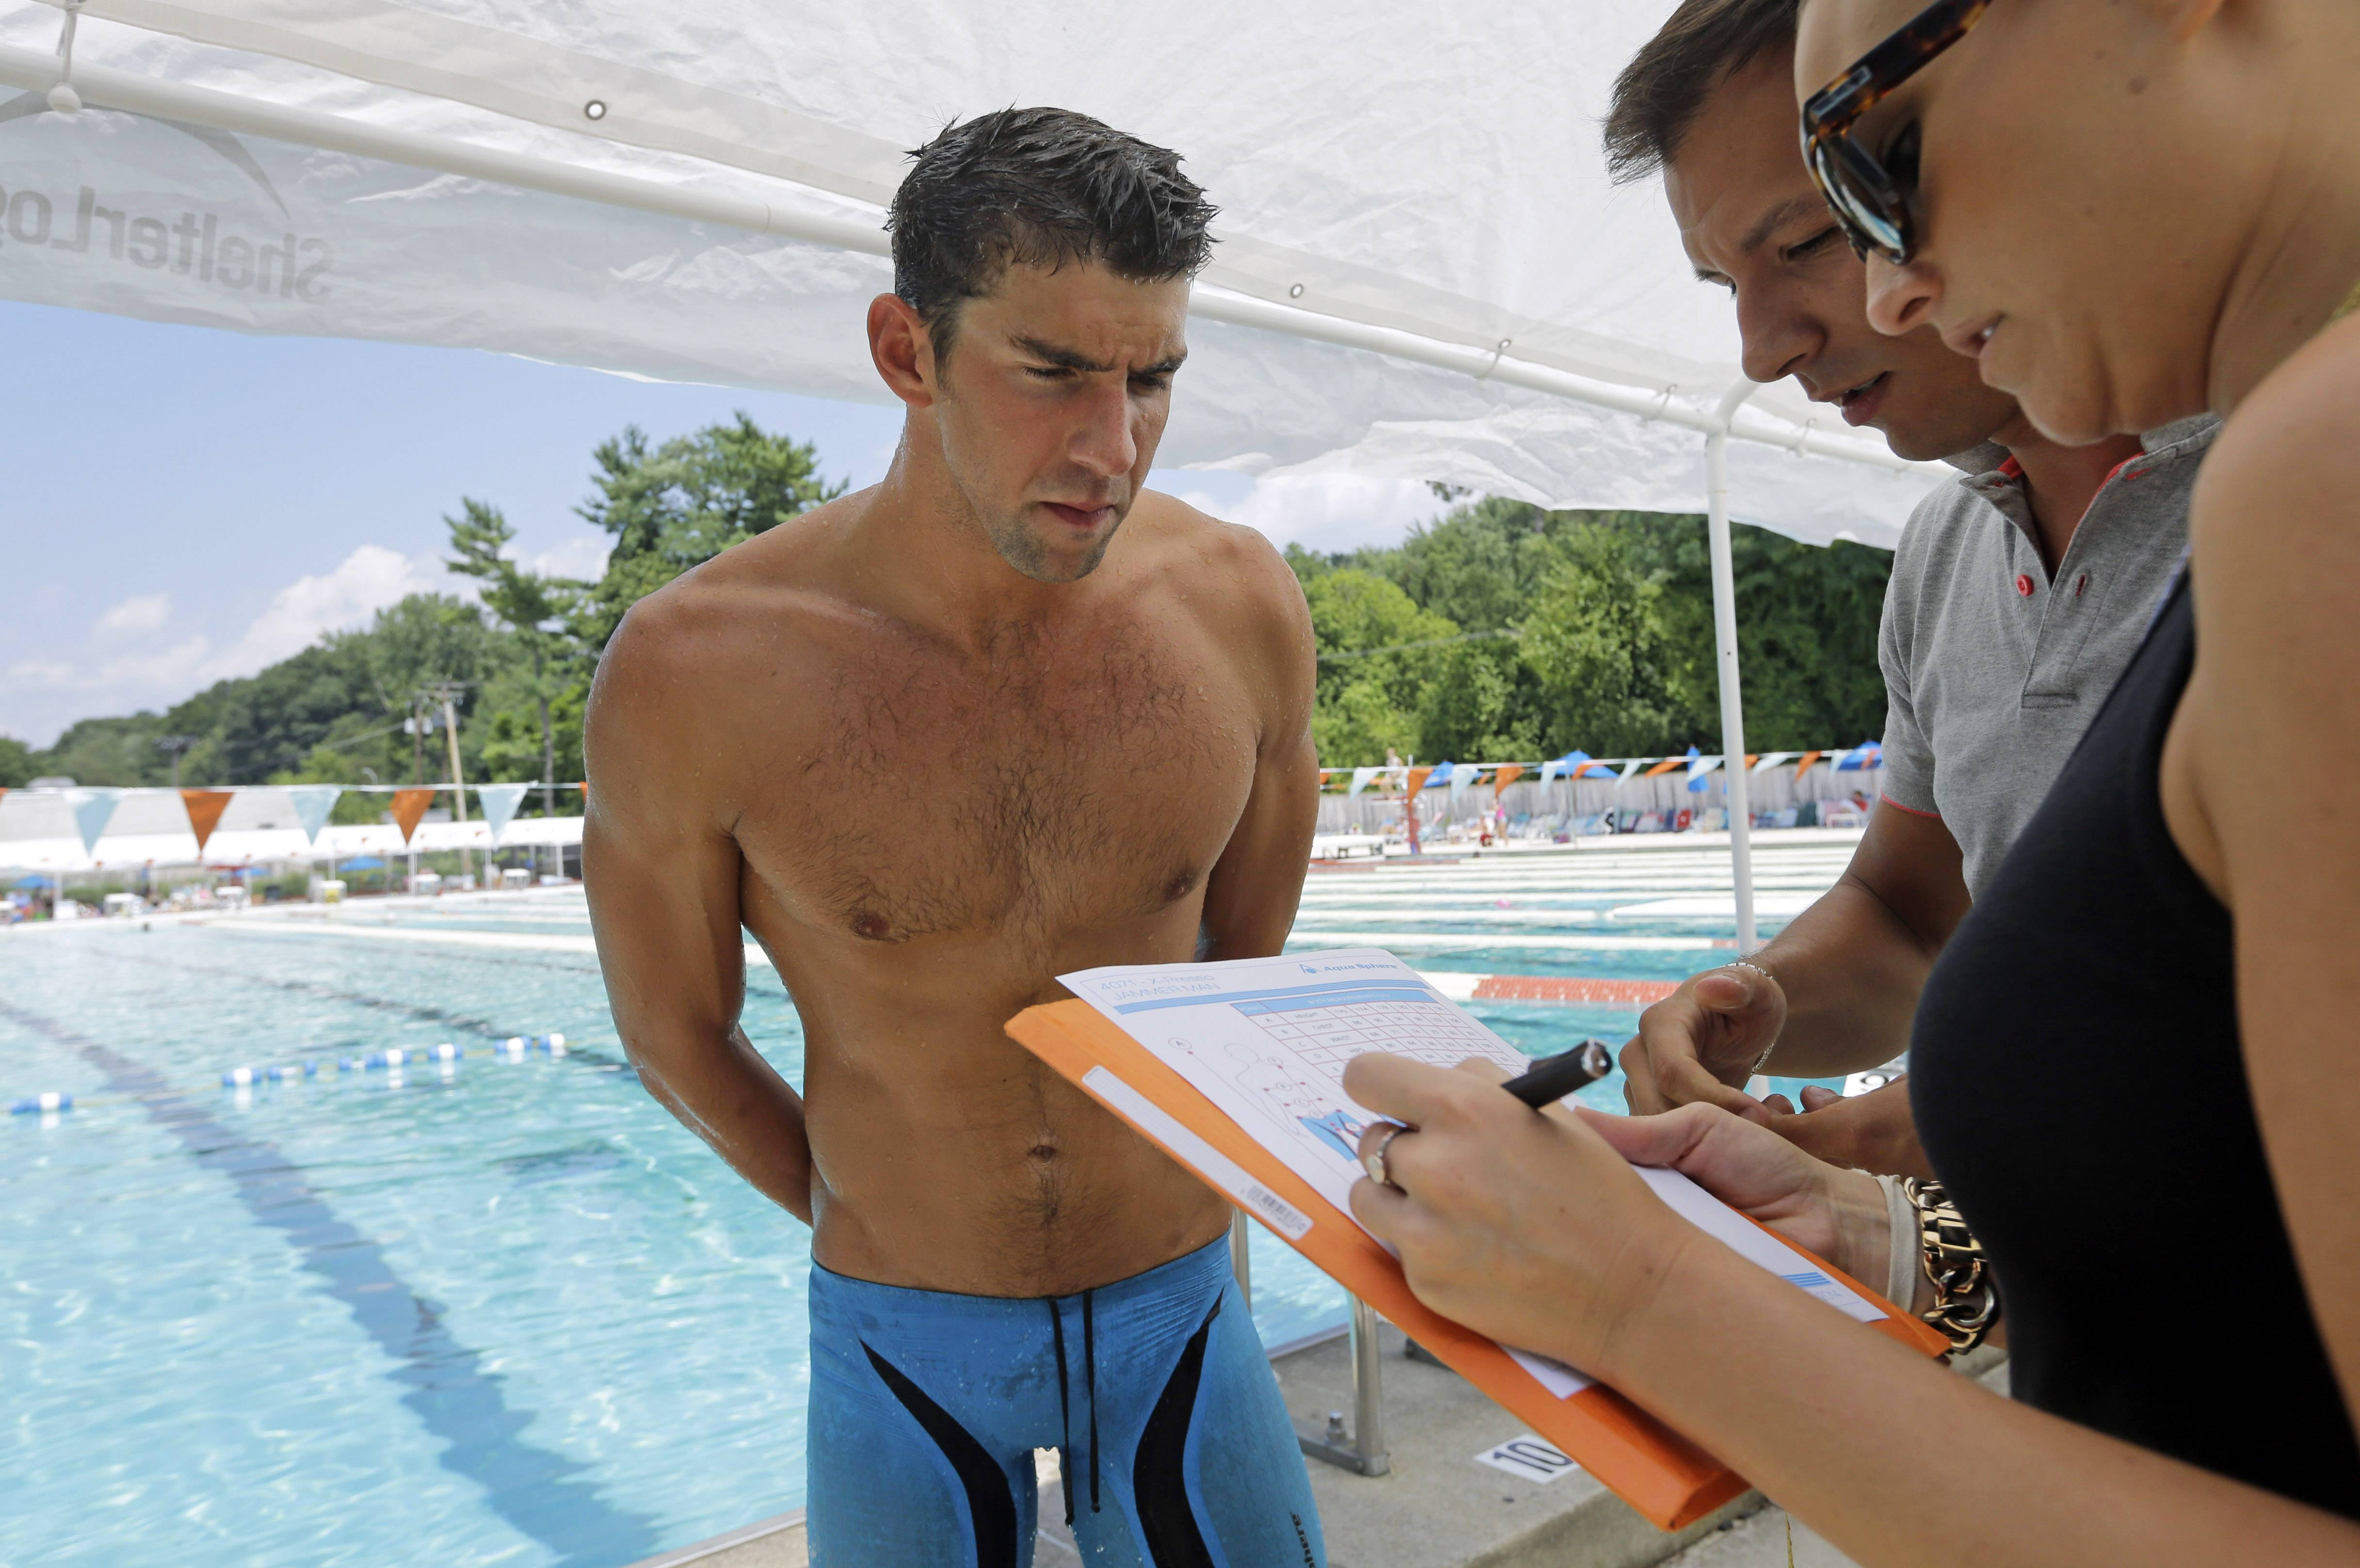 Michael Phelps, left, goes over details of a prototype swimsuit with designers. After partnering with Speedo through most of his swimming career, Phelps has agreed to a new deal with Aqua Sphere.